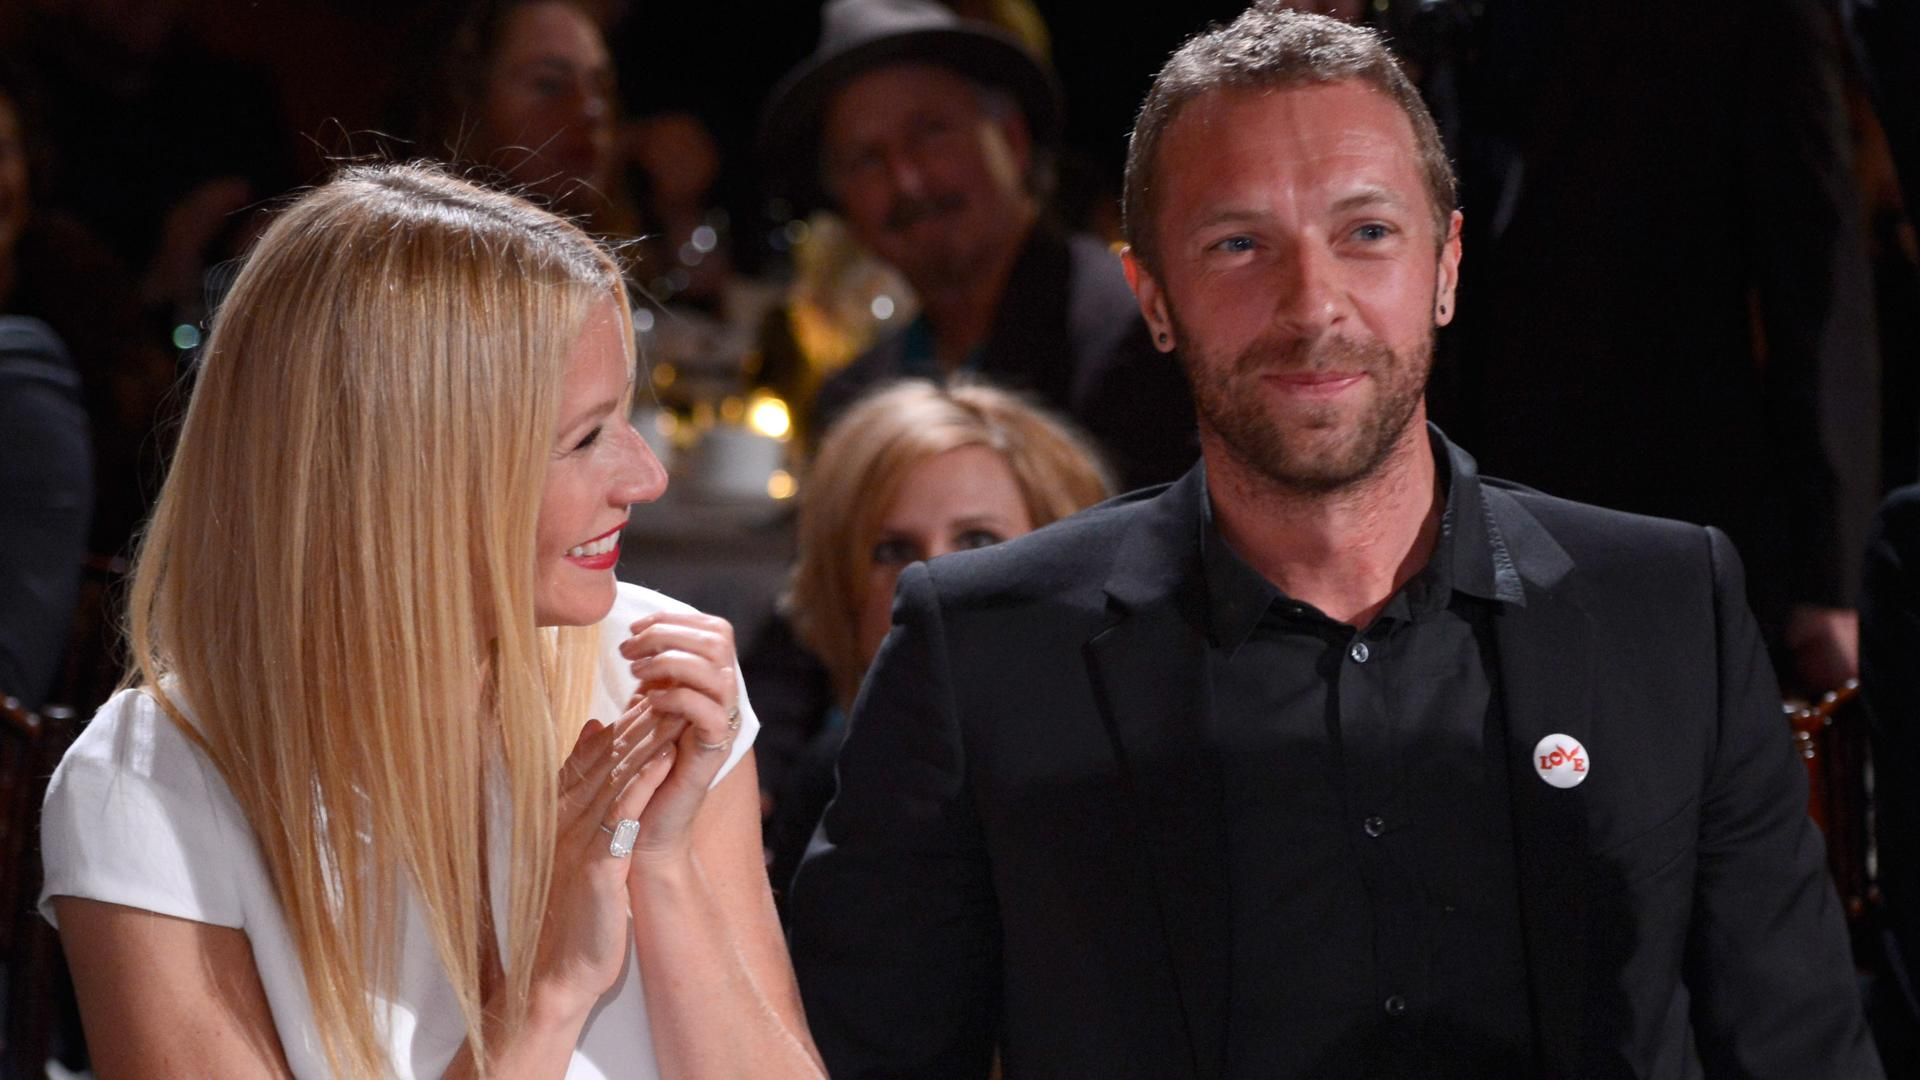 Coldplay Debuts 'Everglow,' Featuring Gwyneth Paltrow